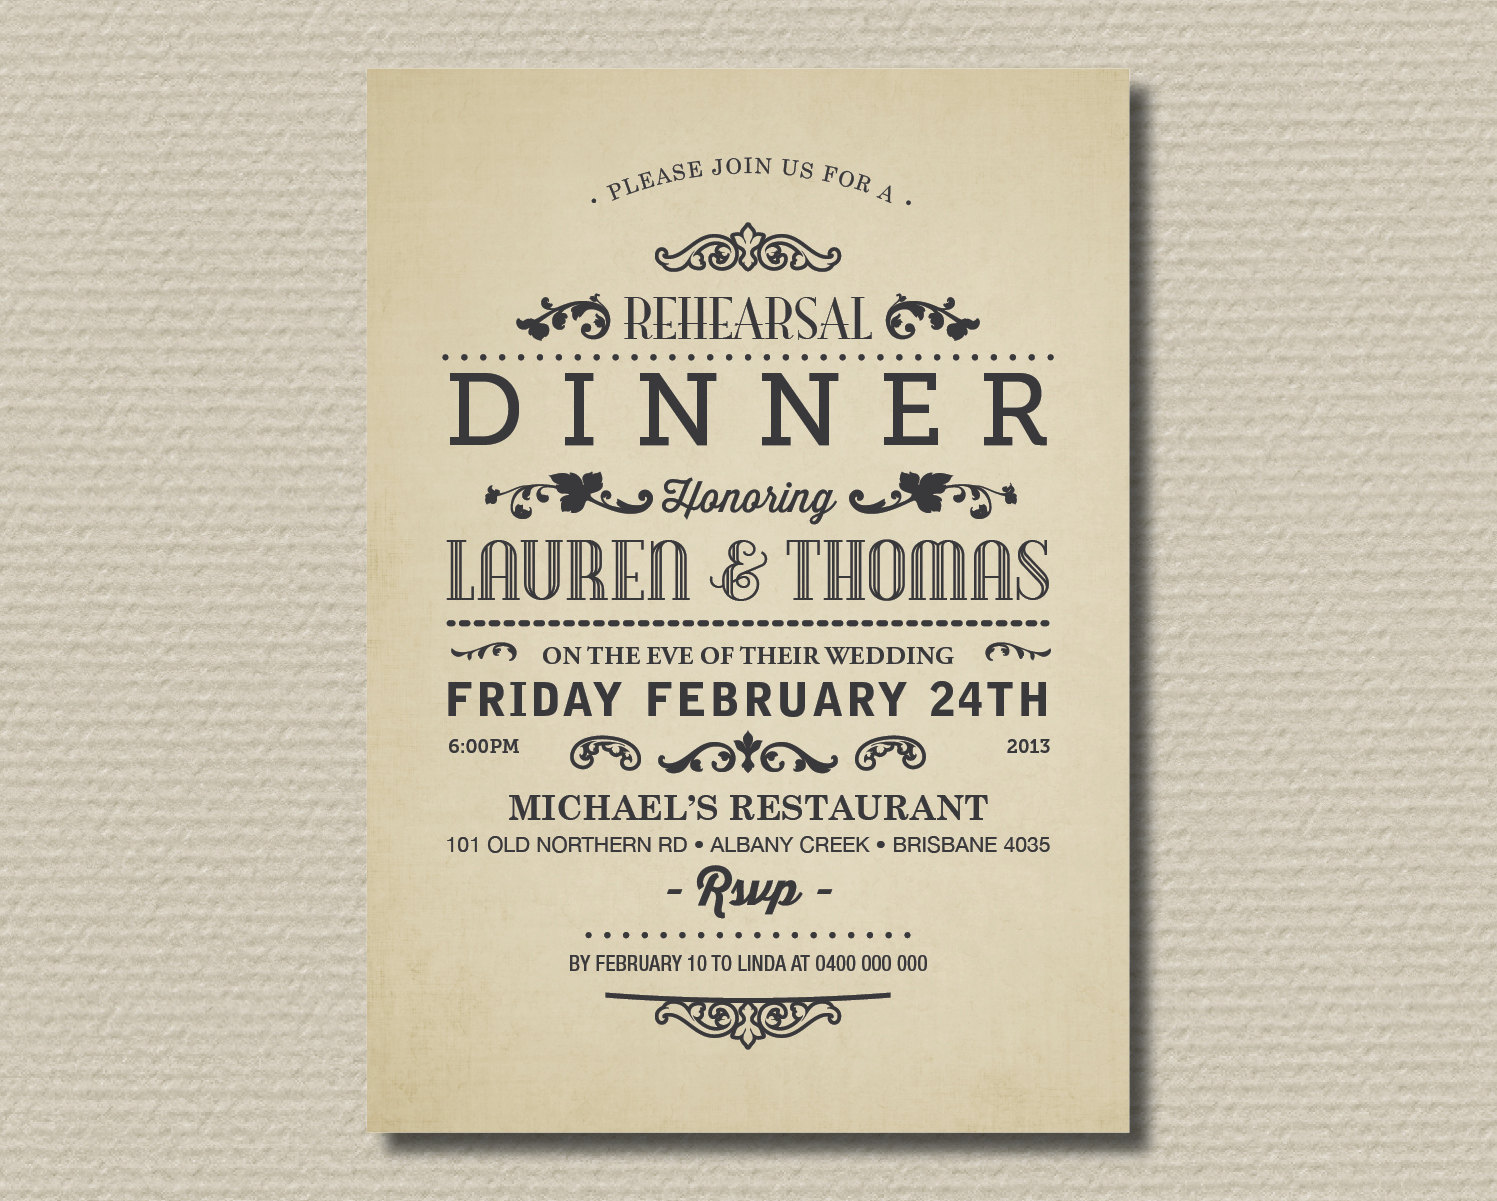 Dinner Party Invitations Templates Mickey Mouse Invitations – Free Dinner Invitations